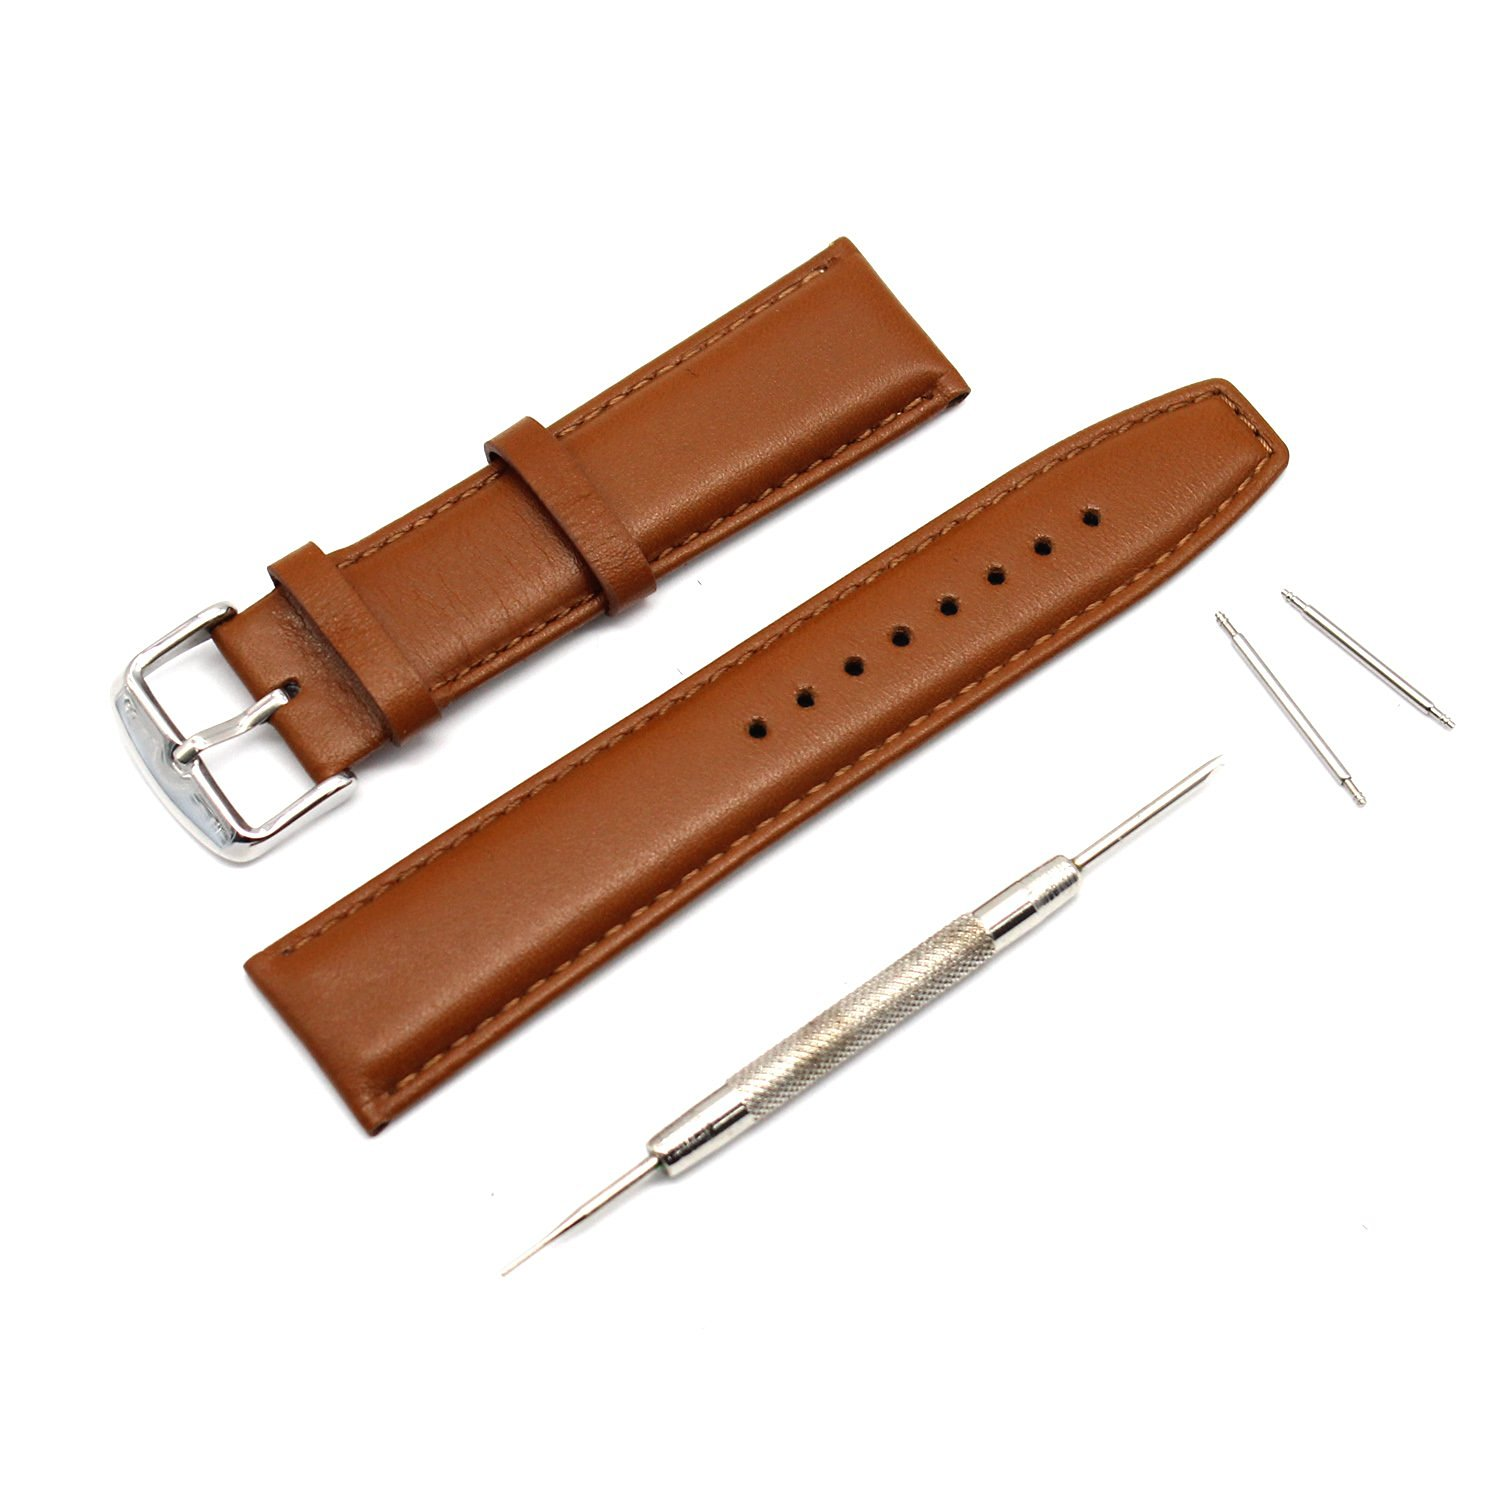 MOTONG 22mm Replacement Genuine Leather Watch Band For Motorola Moto 360 Watch 2nd Gen,Men's 46mm